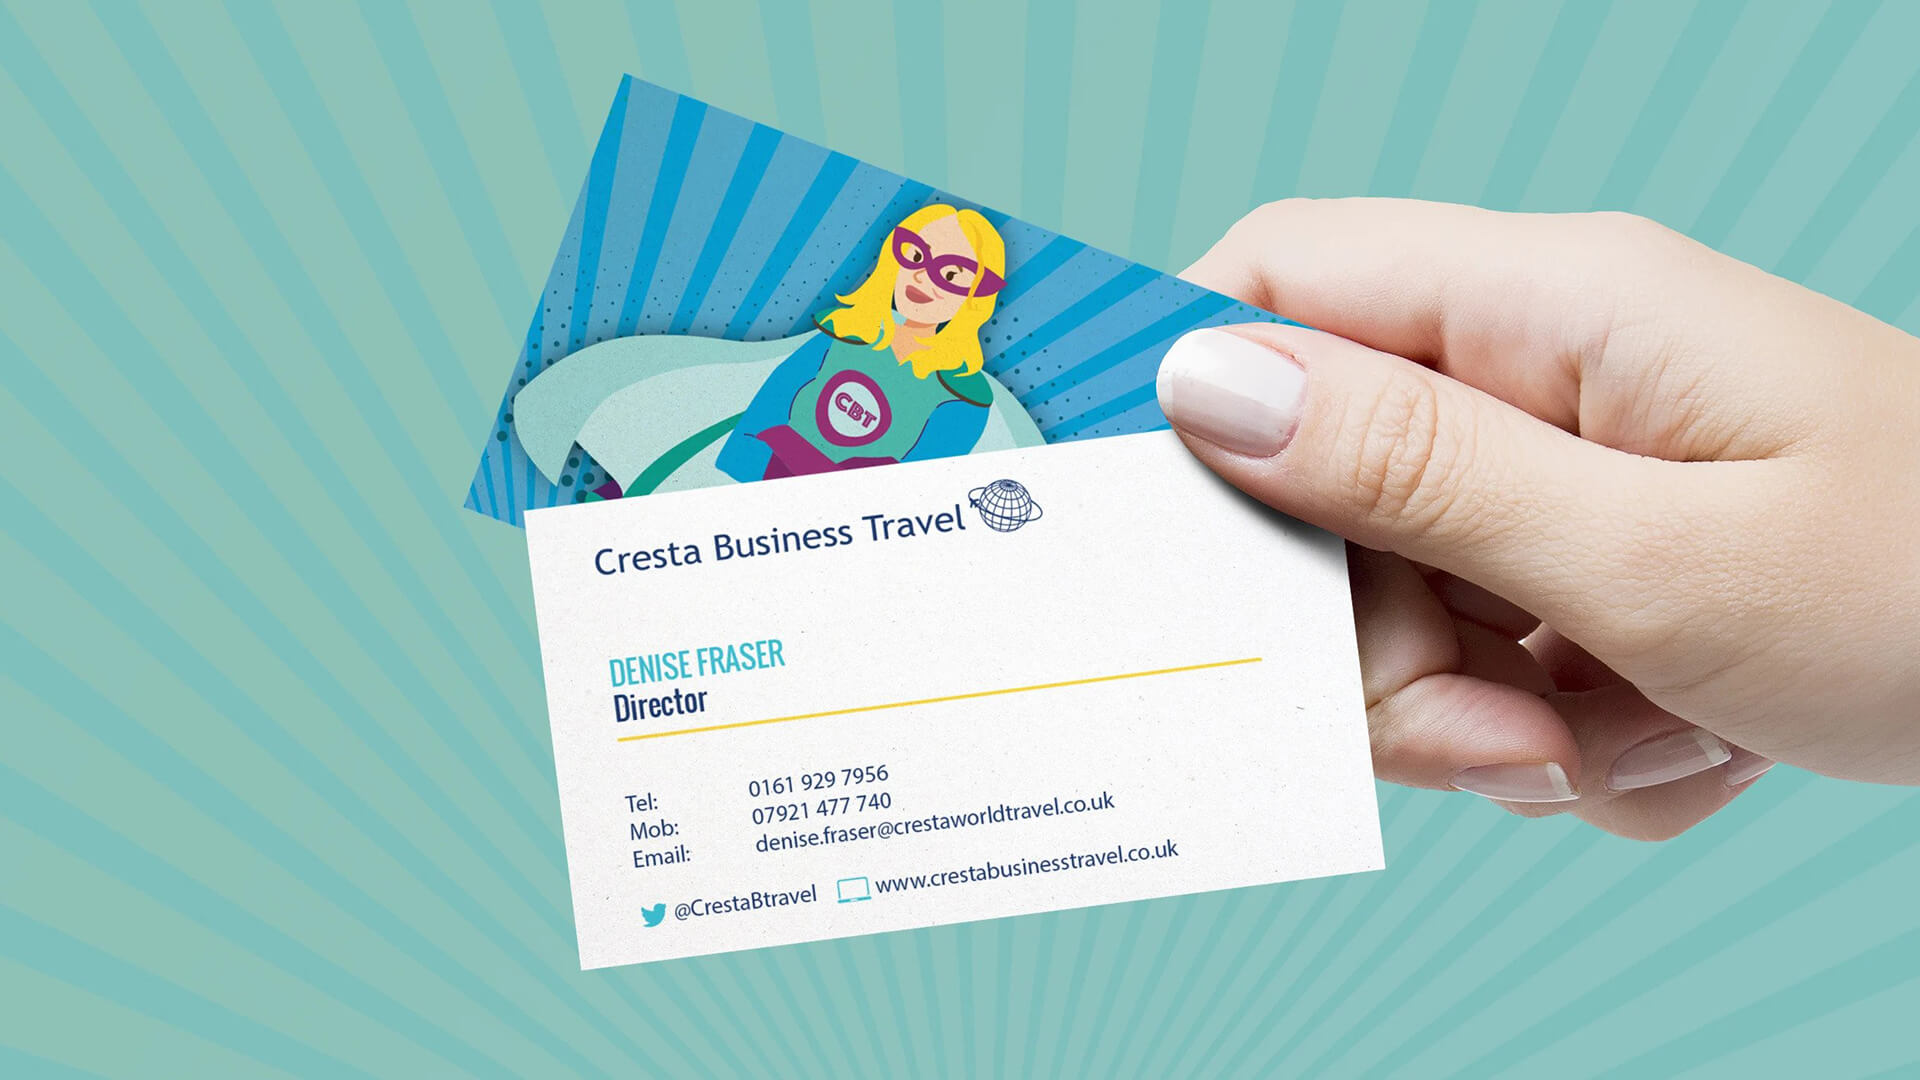 Cresta Business Travel image